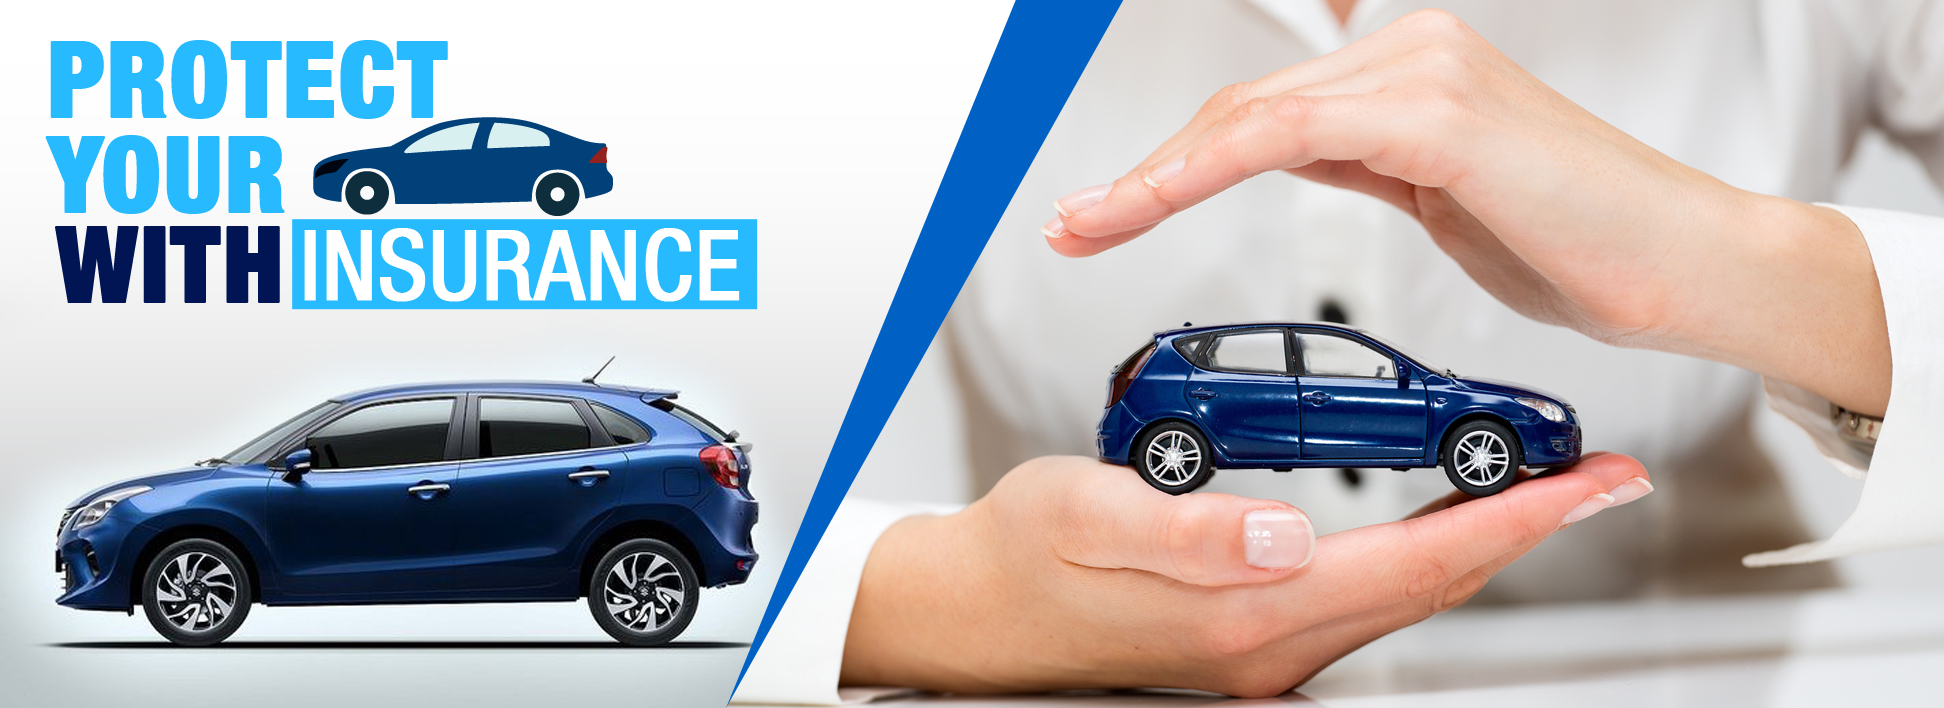 Renew Your Car Insurance And Take Home Free Service Coupons Worth Rs.500!